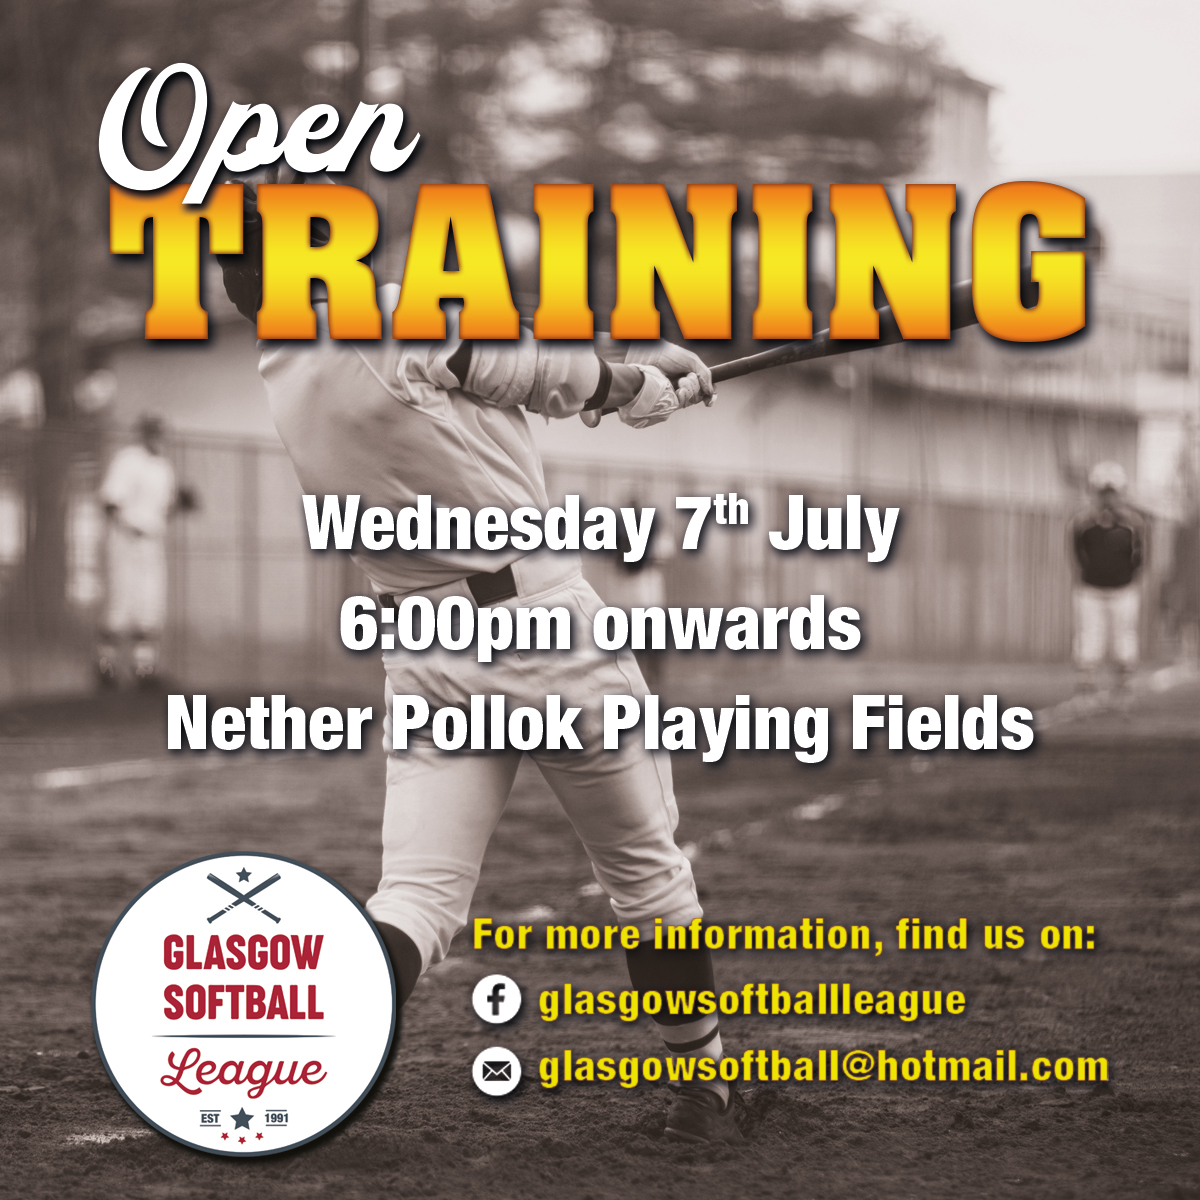 Open training wednesday 7th july 6:00pm onwards at Nether Pollock Playing fields.